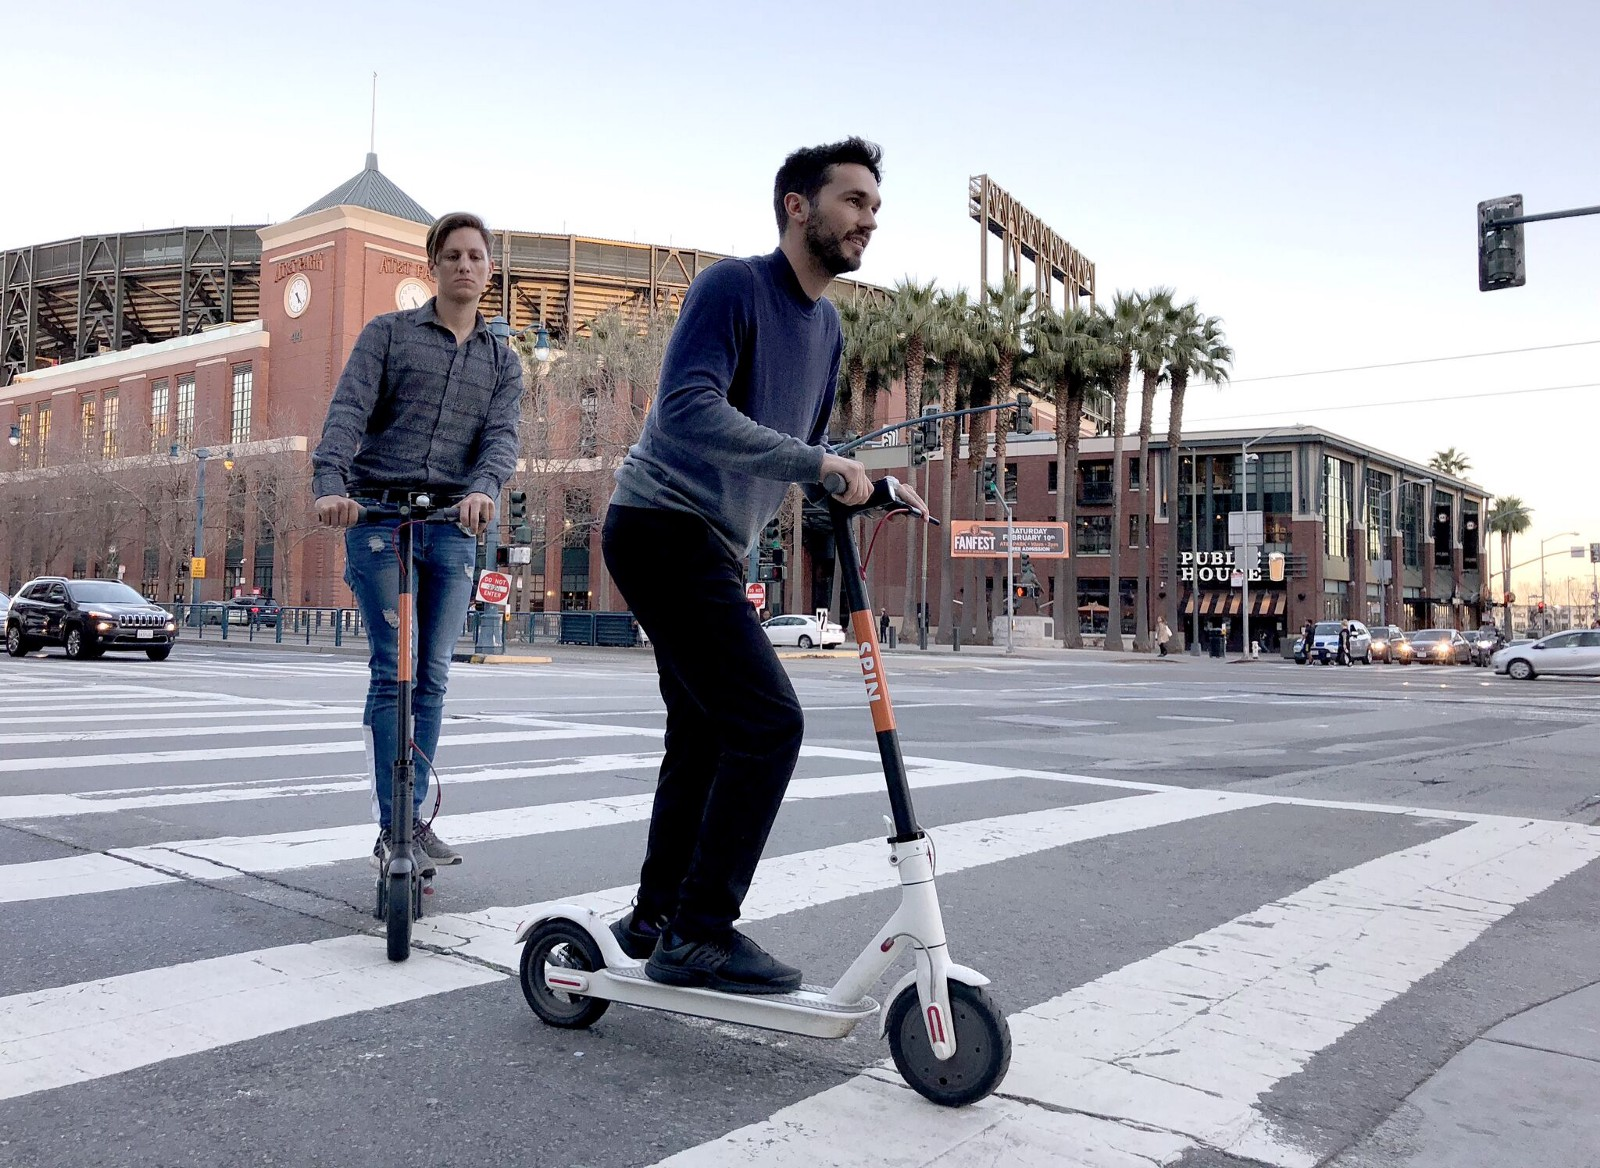 Ford-owned Spin electric scooter-sharing service heading to Europe - SiliconANGLE